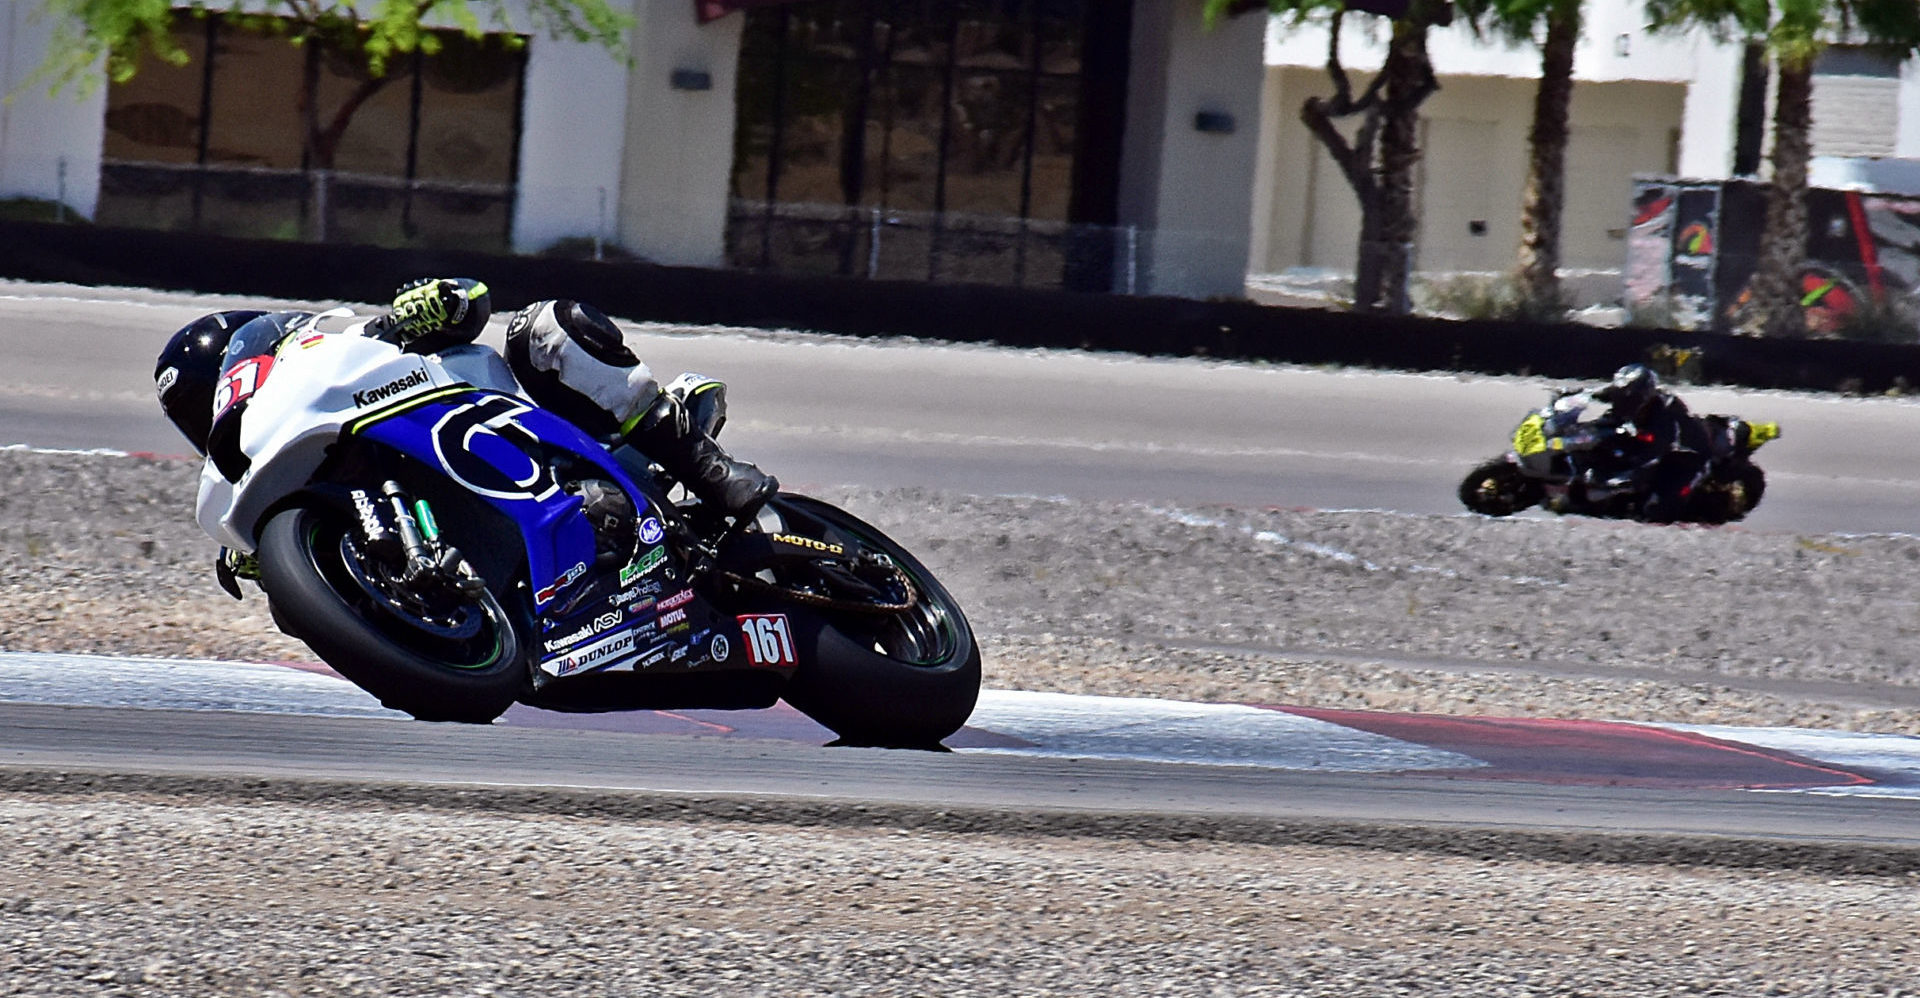 WERA racers in action at the Las Vegas Classic Course. Photo by Michael Gougis.